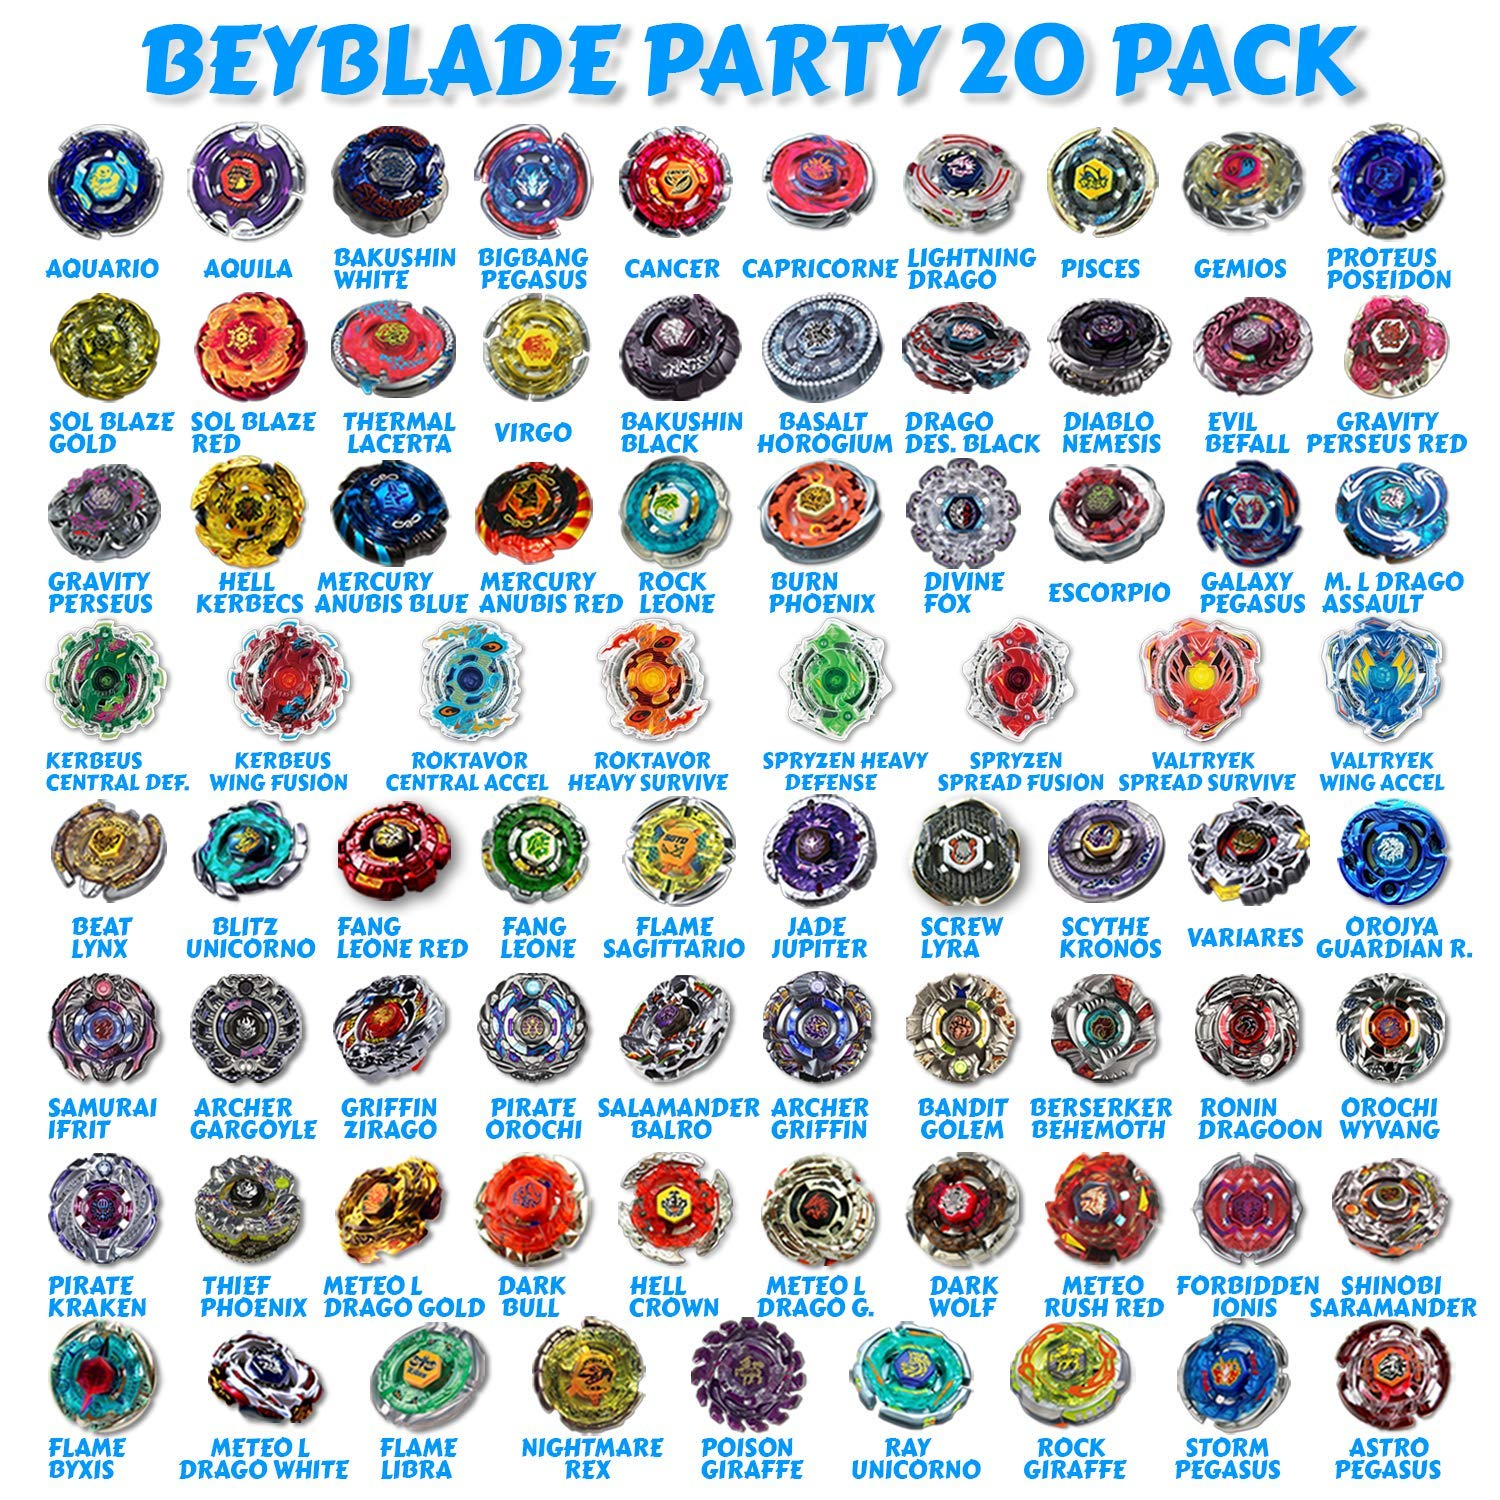 Beyblade Party 20 Random Beyblade Pack Metal Fusion, Metal Fury, Metal Master, Zero G Shogun Steel, Burst Series Shipped and Sold from The US